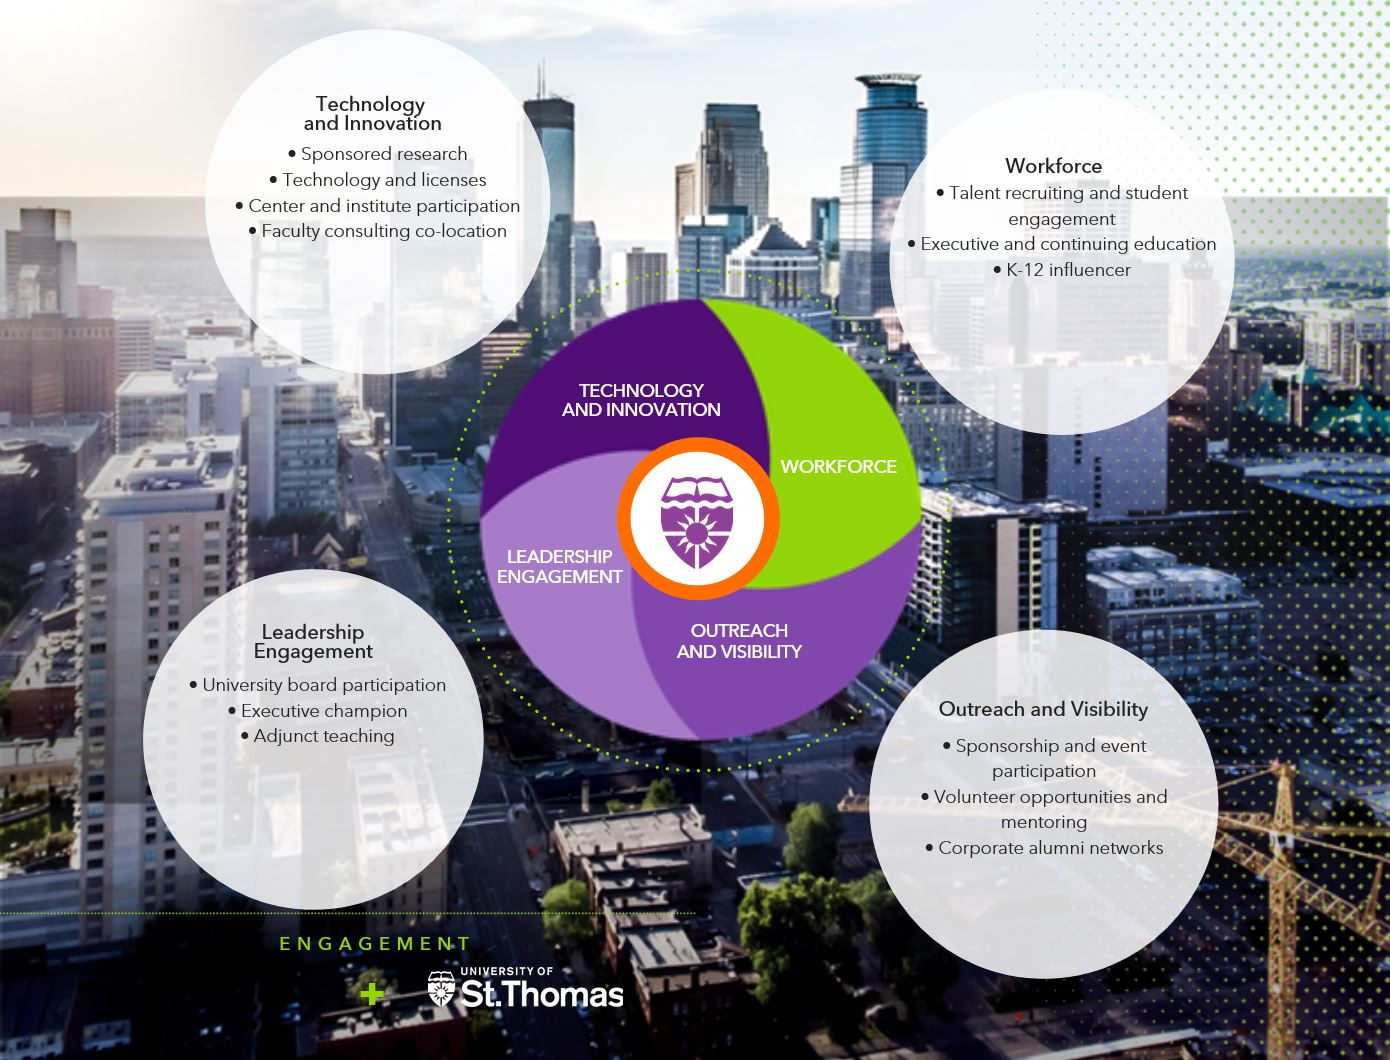 Engagement wheel shows four different ways corporations and St. Thomas can engage with one another.